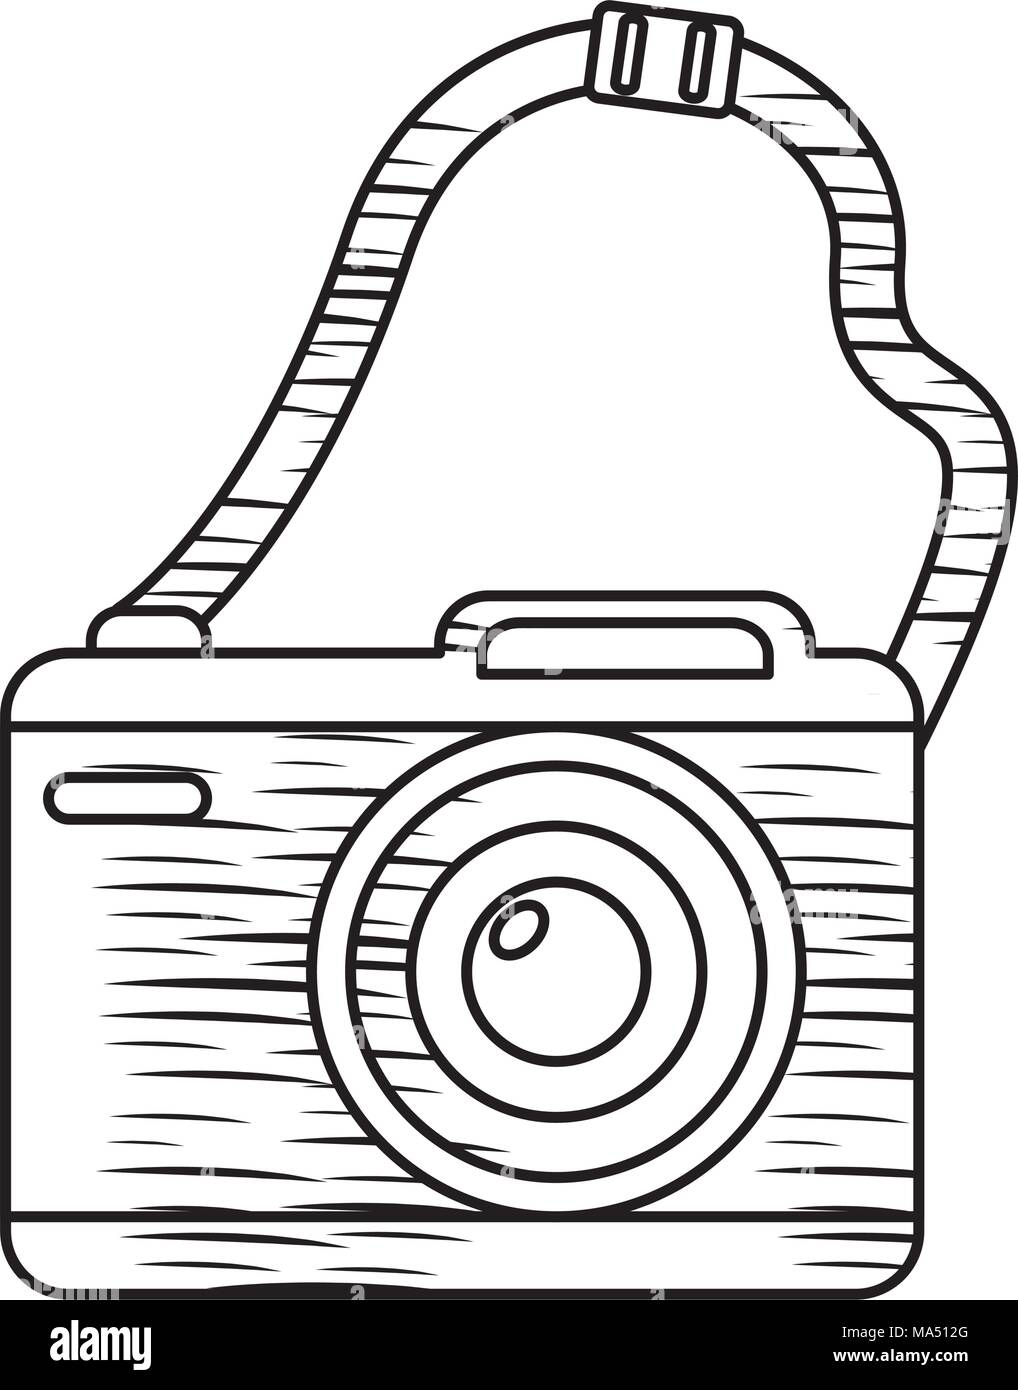 Sketch Of Photographic Camera With Strap Over White Background Vector Illustration